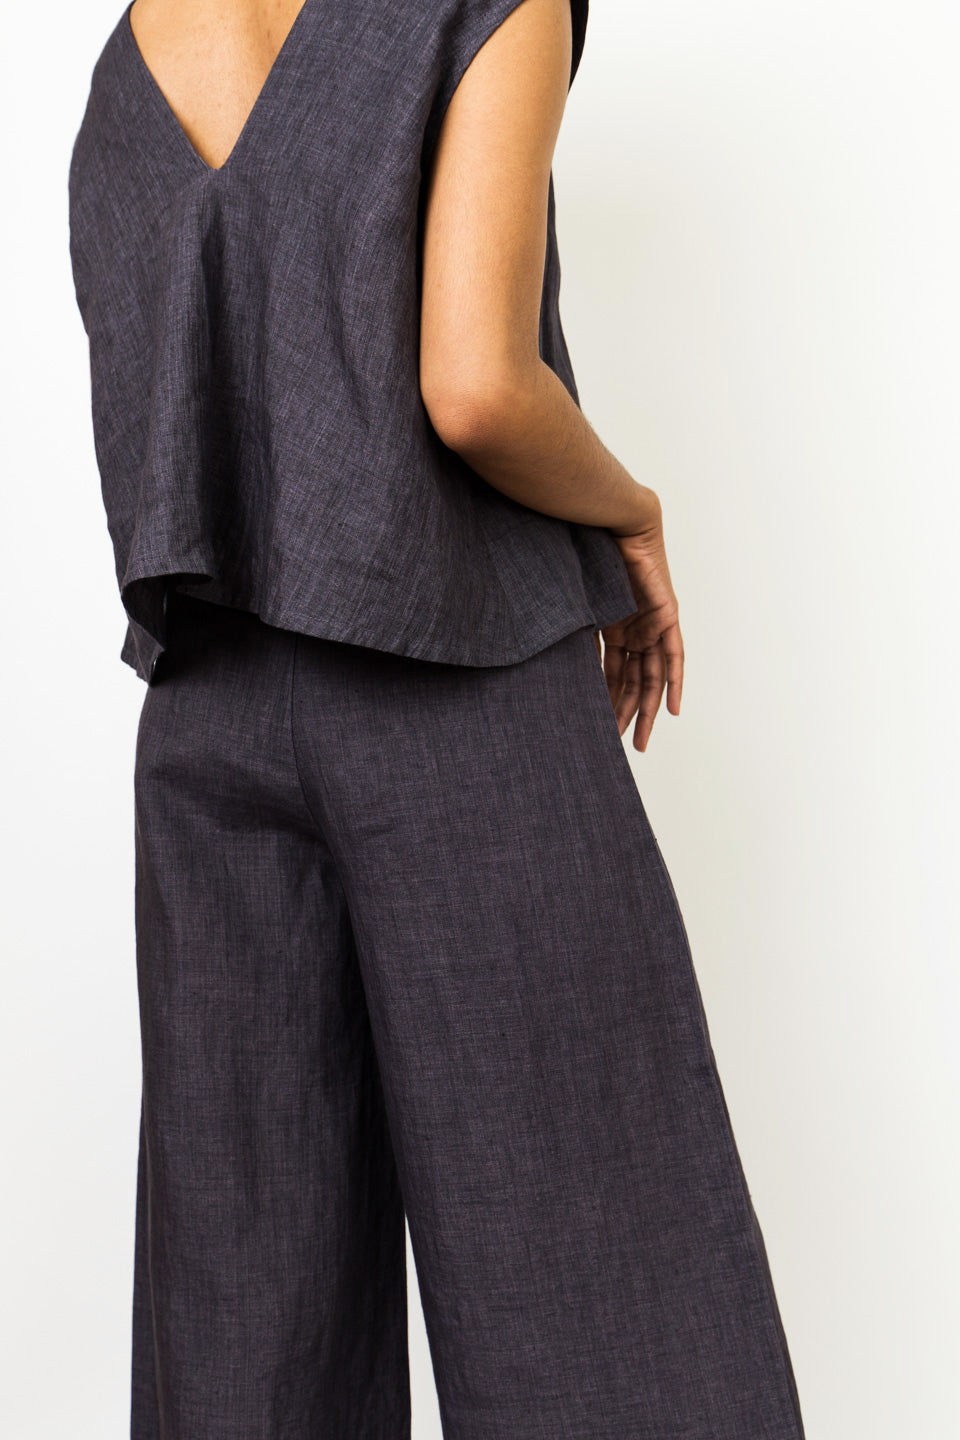 7115 by Szeki Signature Wide Leg Trouser-Blue Trouser-Wide Leg Trouser